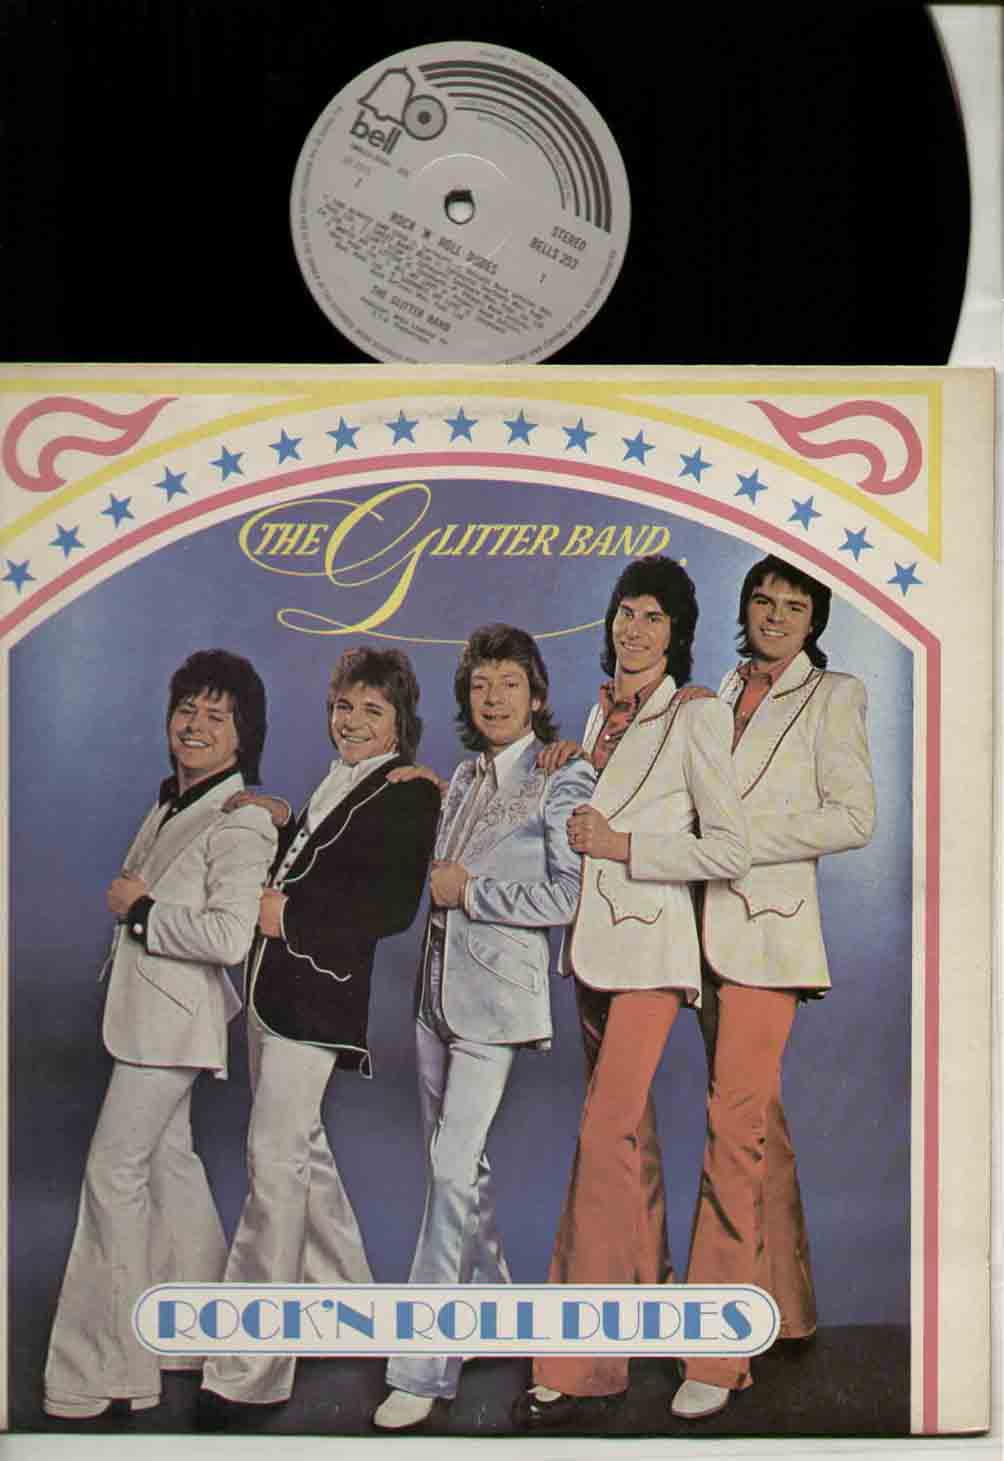 Rock N Roll Dudes - Glitter Band